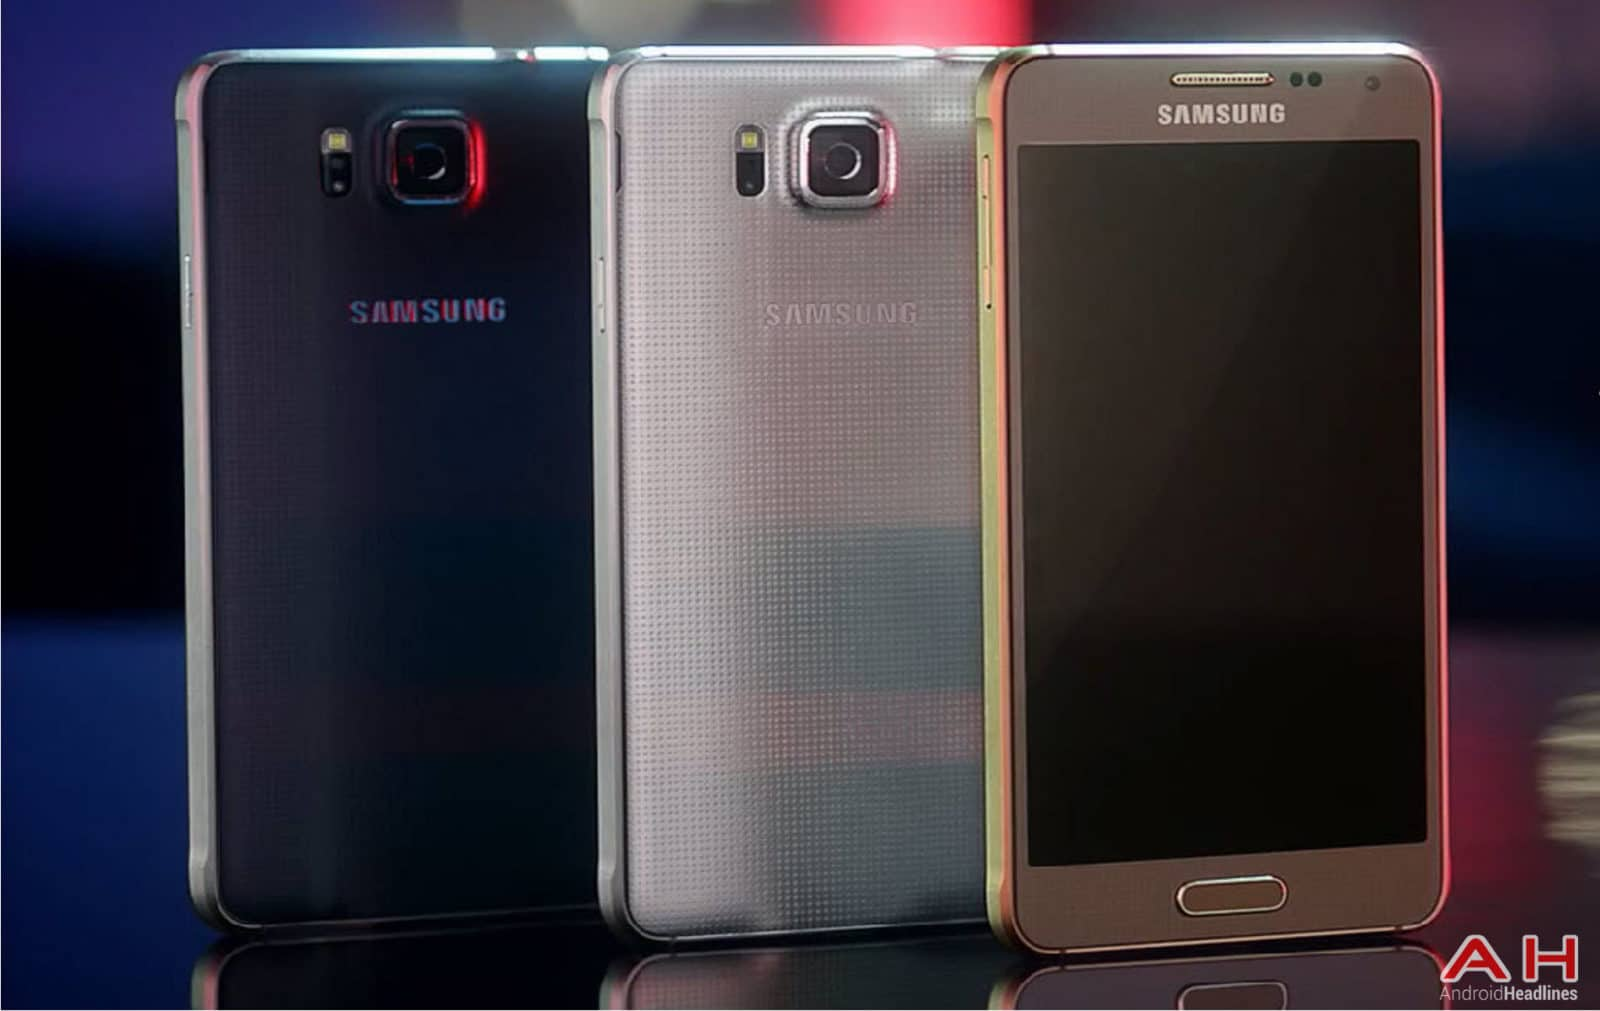 Samsung Galaxy Alpha Three Colors AH